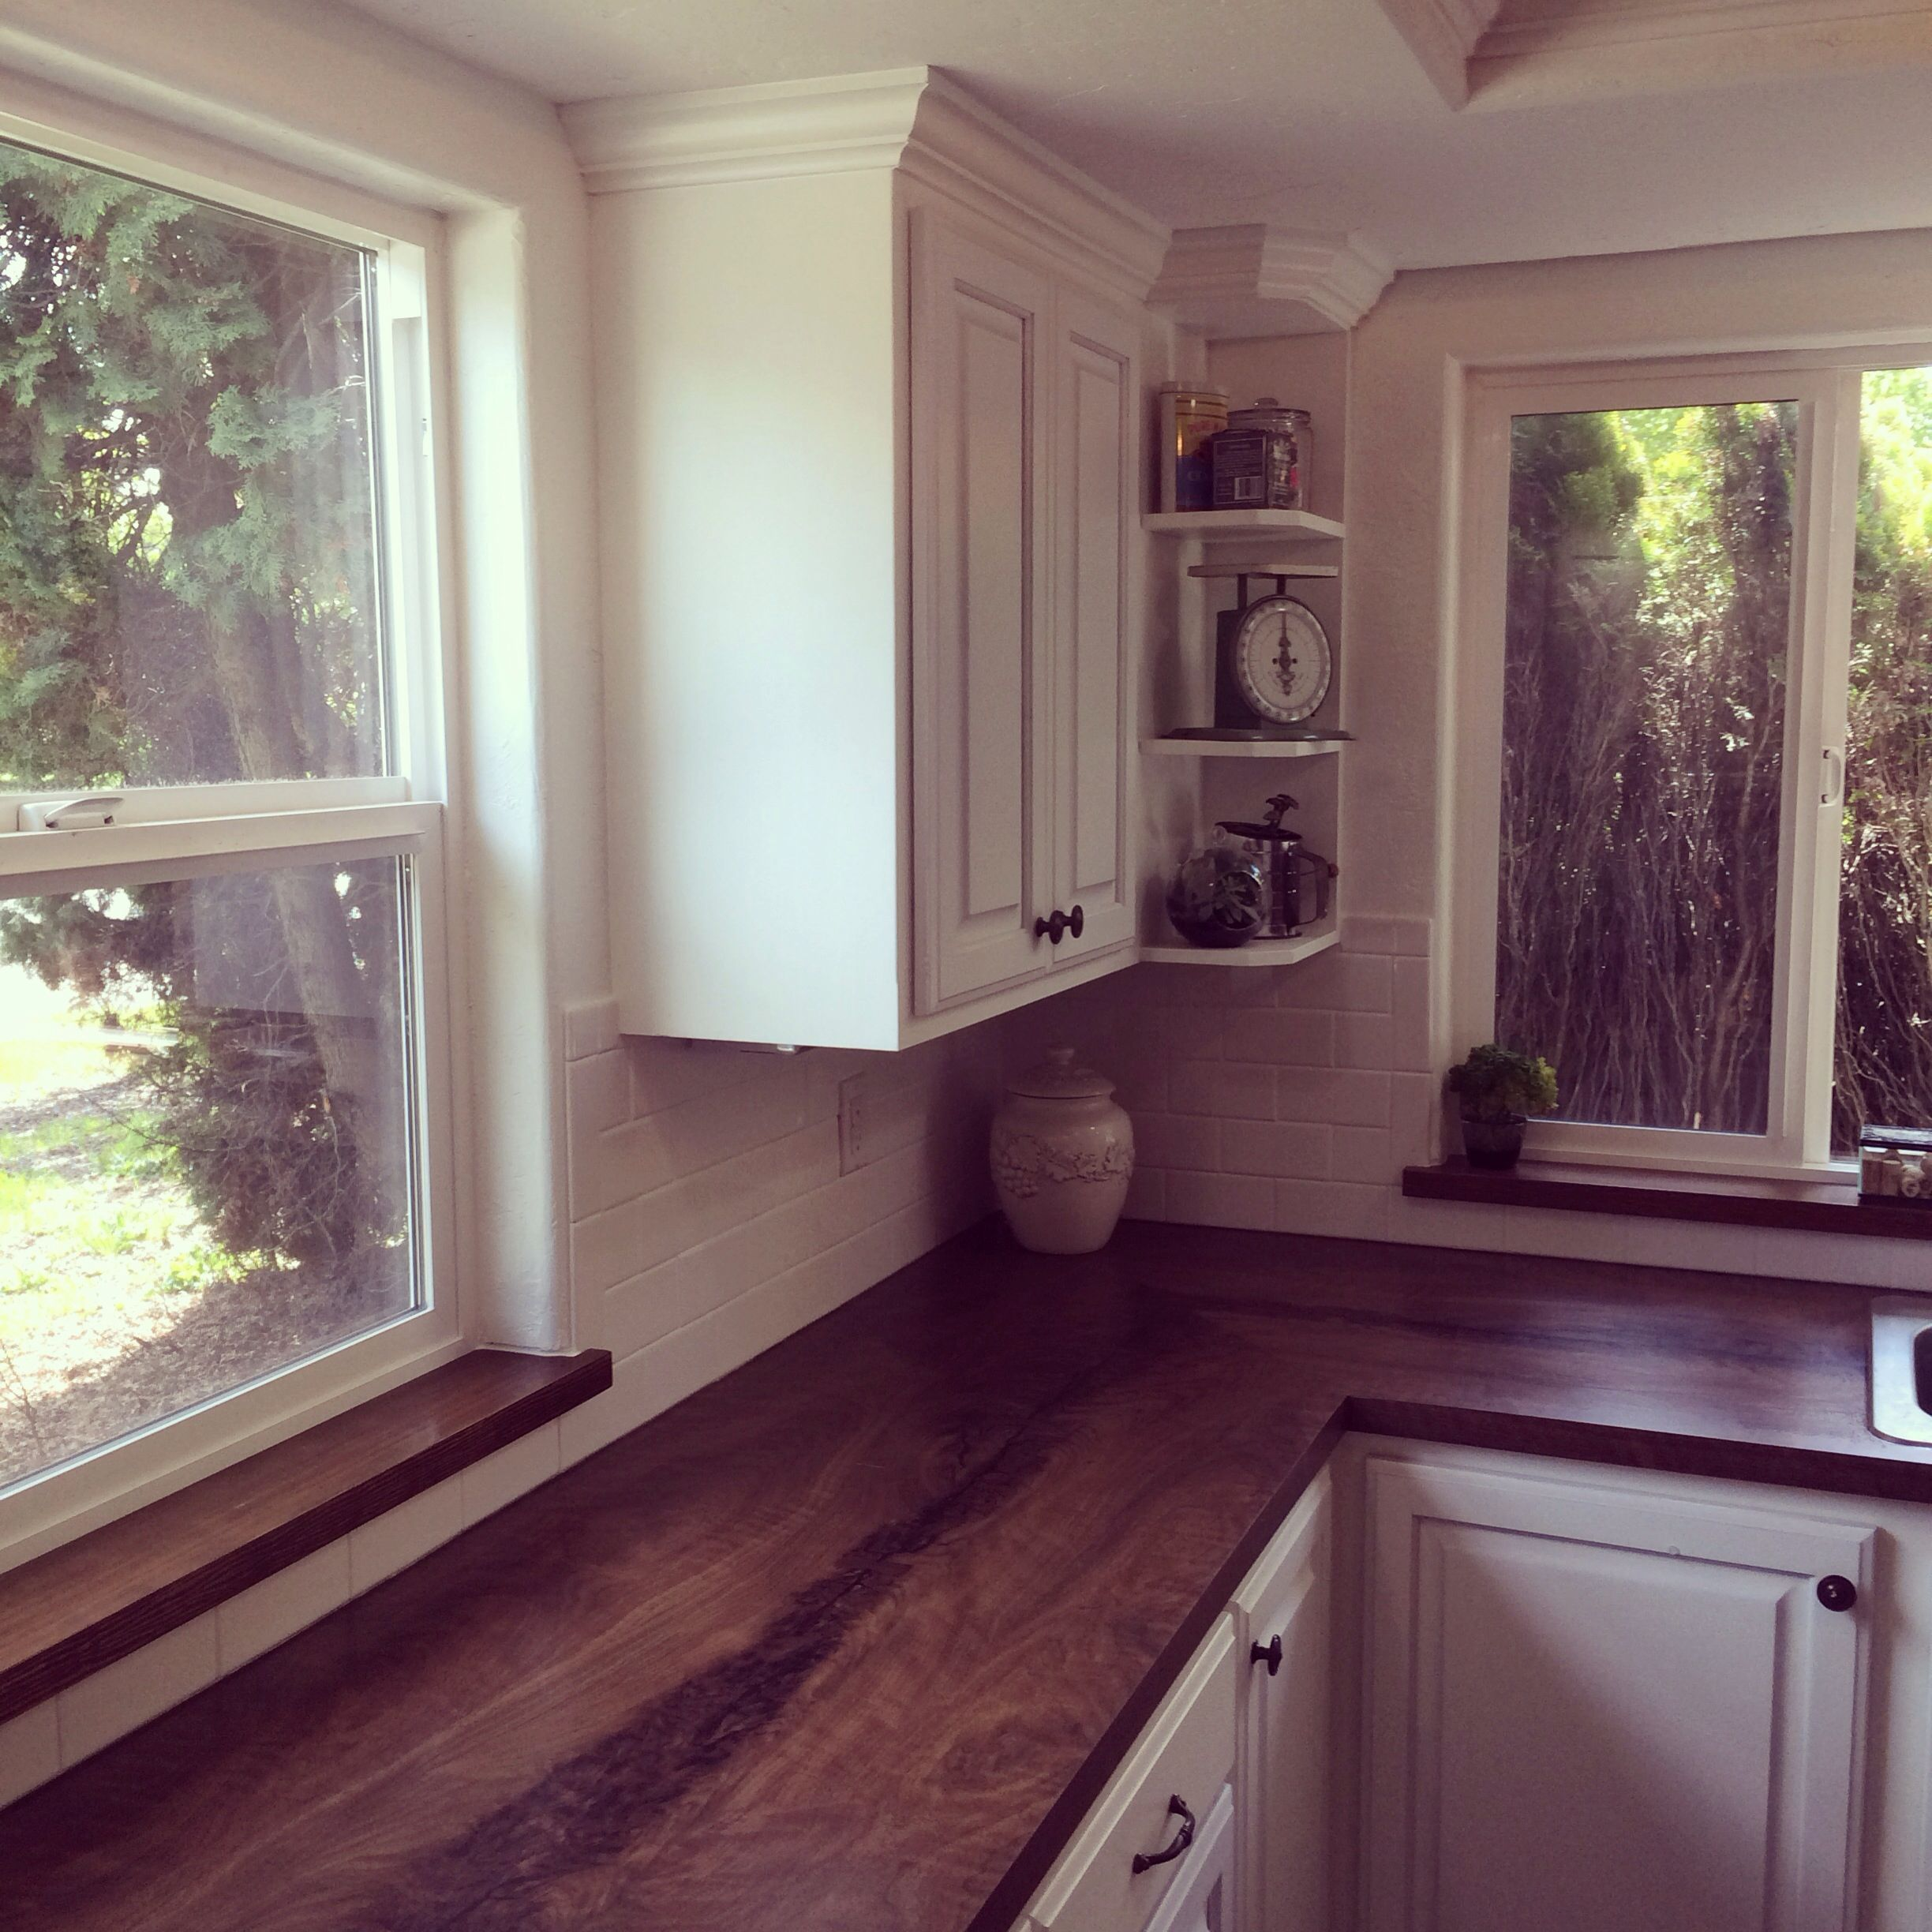 Kitchen painted with Benjamin Moore Advance paint